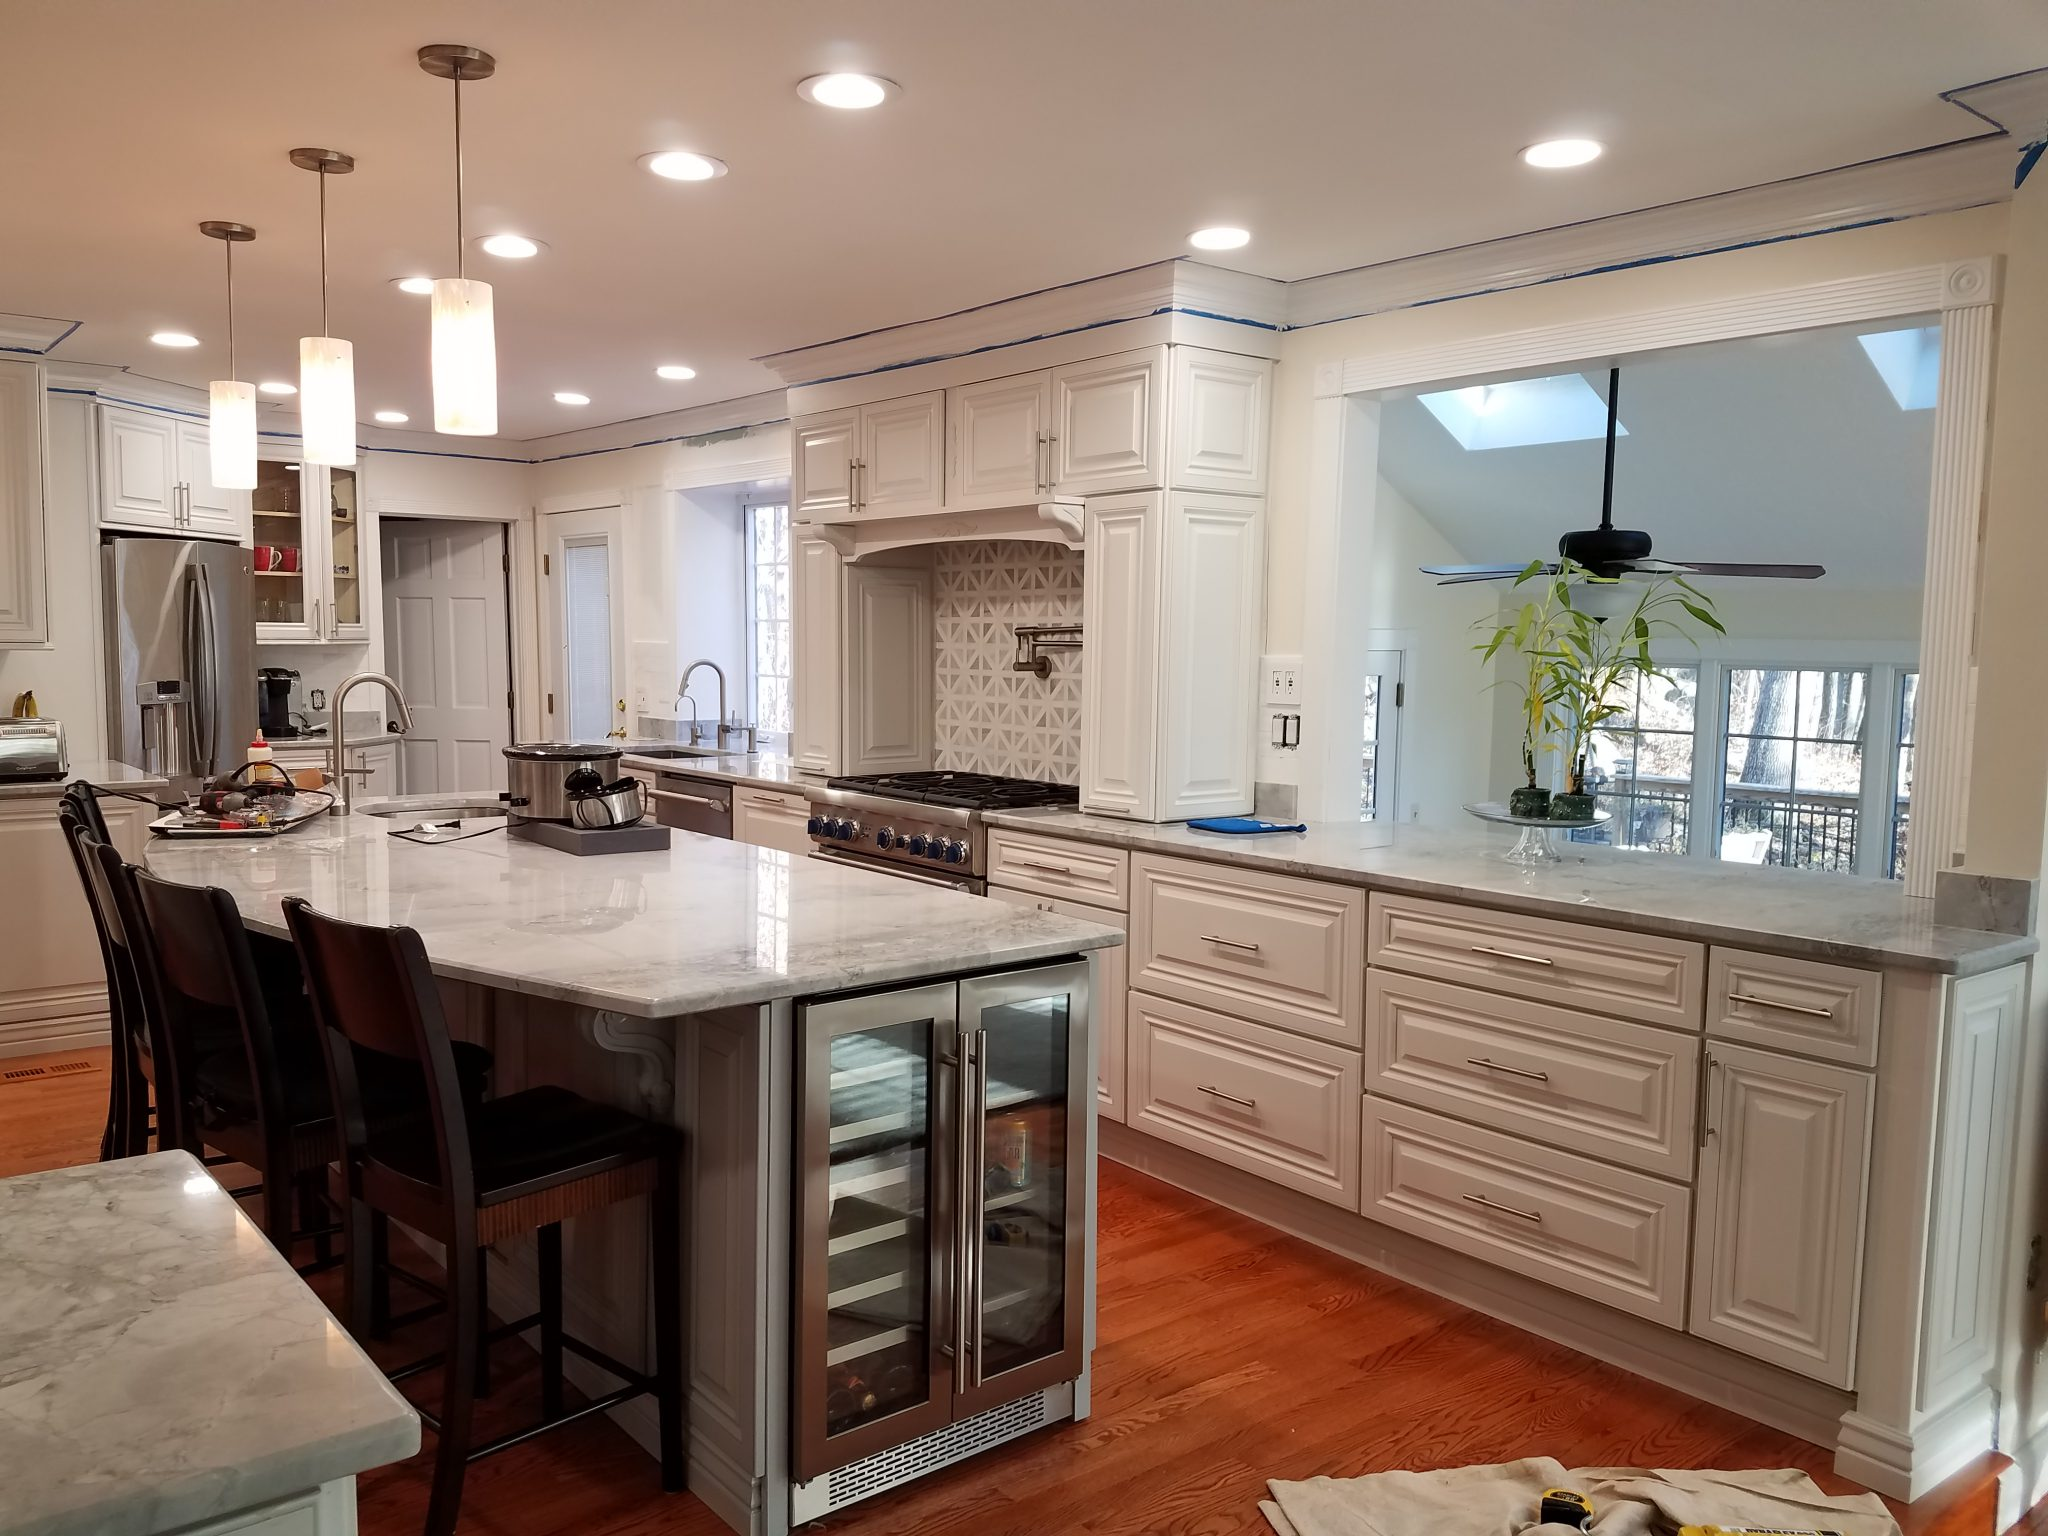 Custom 65k Kitchen Remodel White Raise Panel